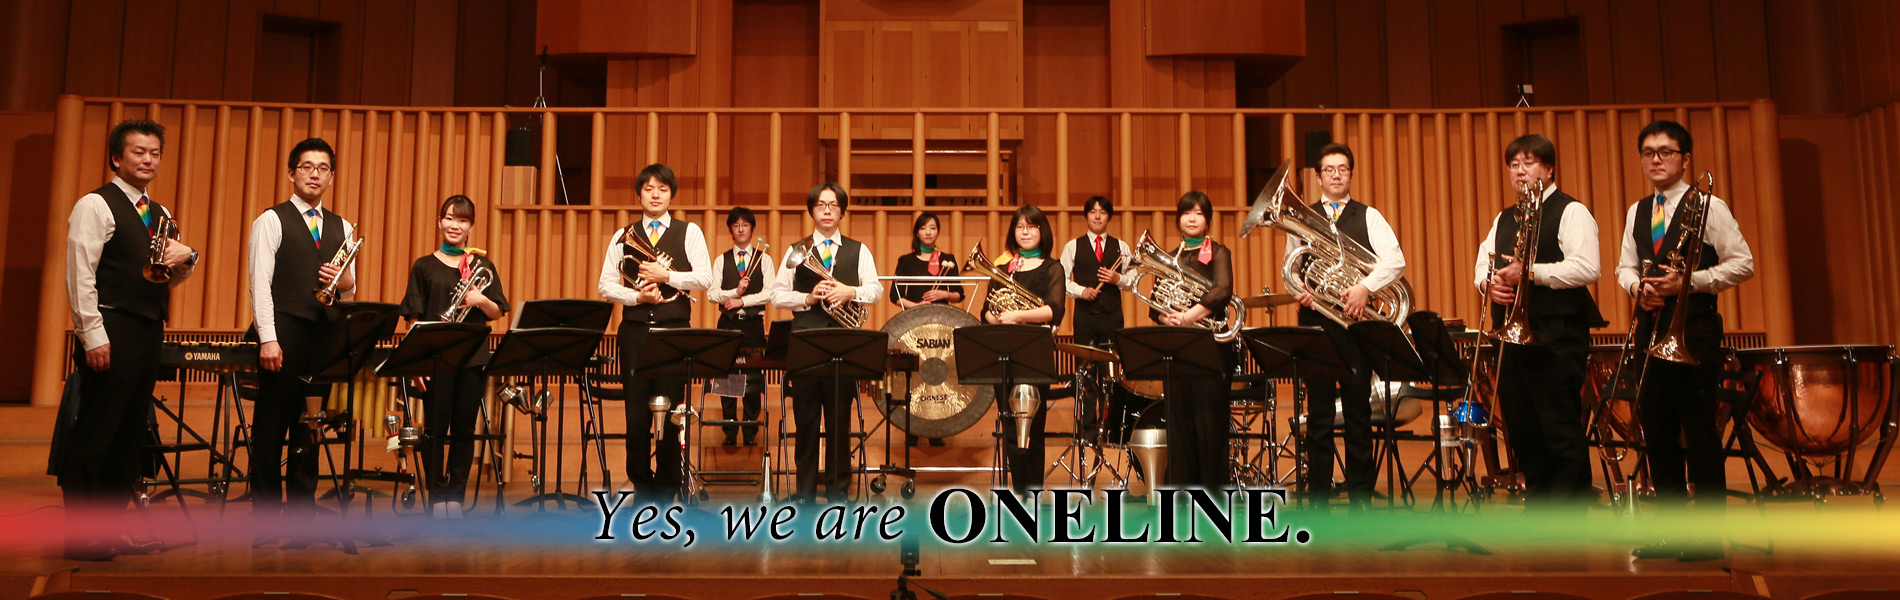 Yes, we are ONELINE.